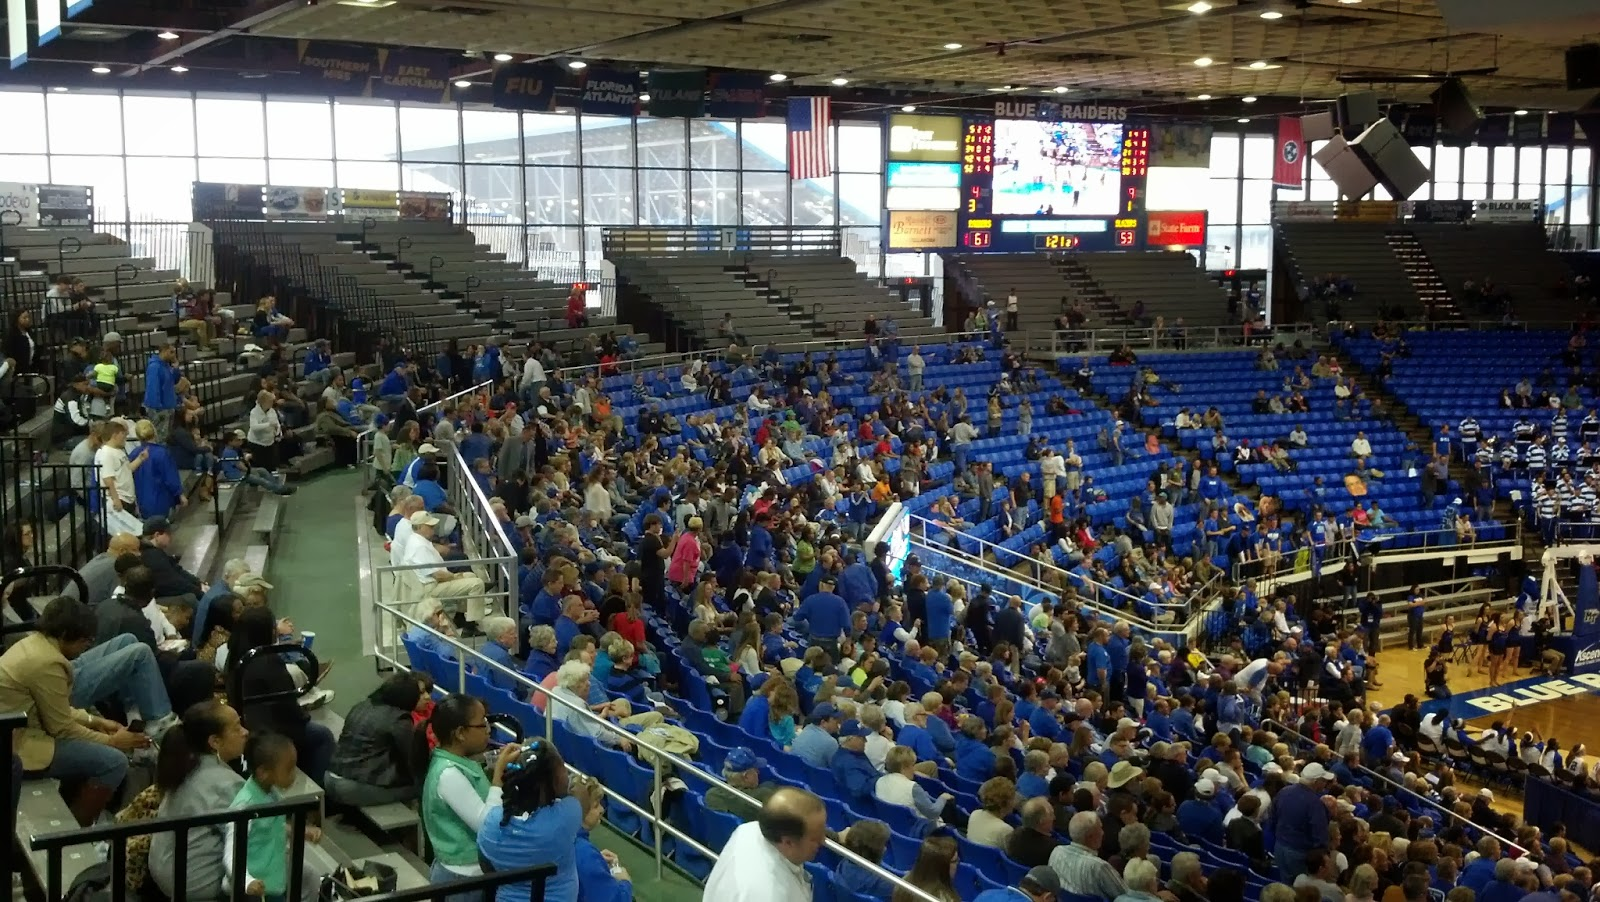 #154: Middle Tennessee State University Charles M. Murphy ...